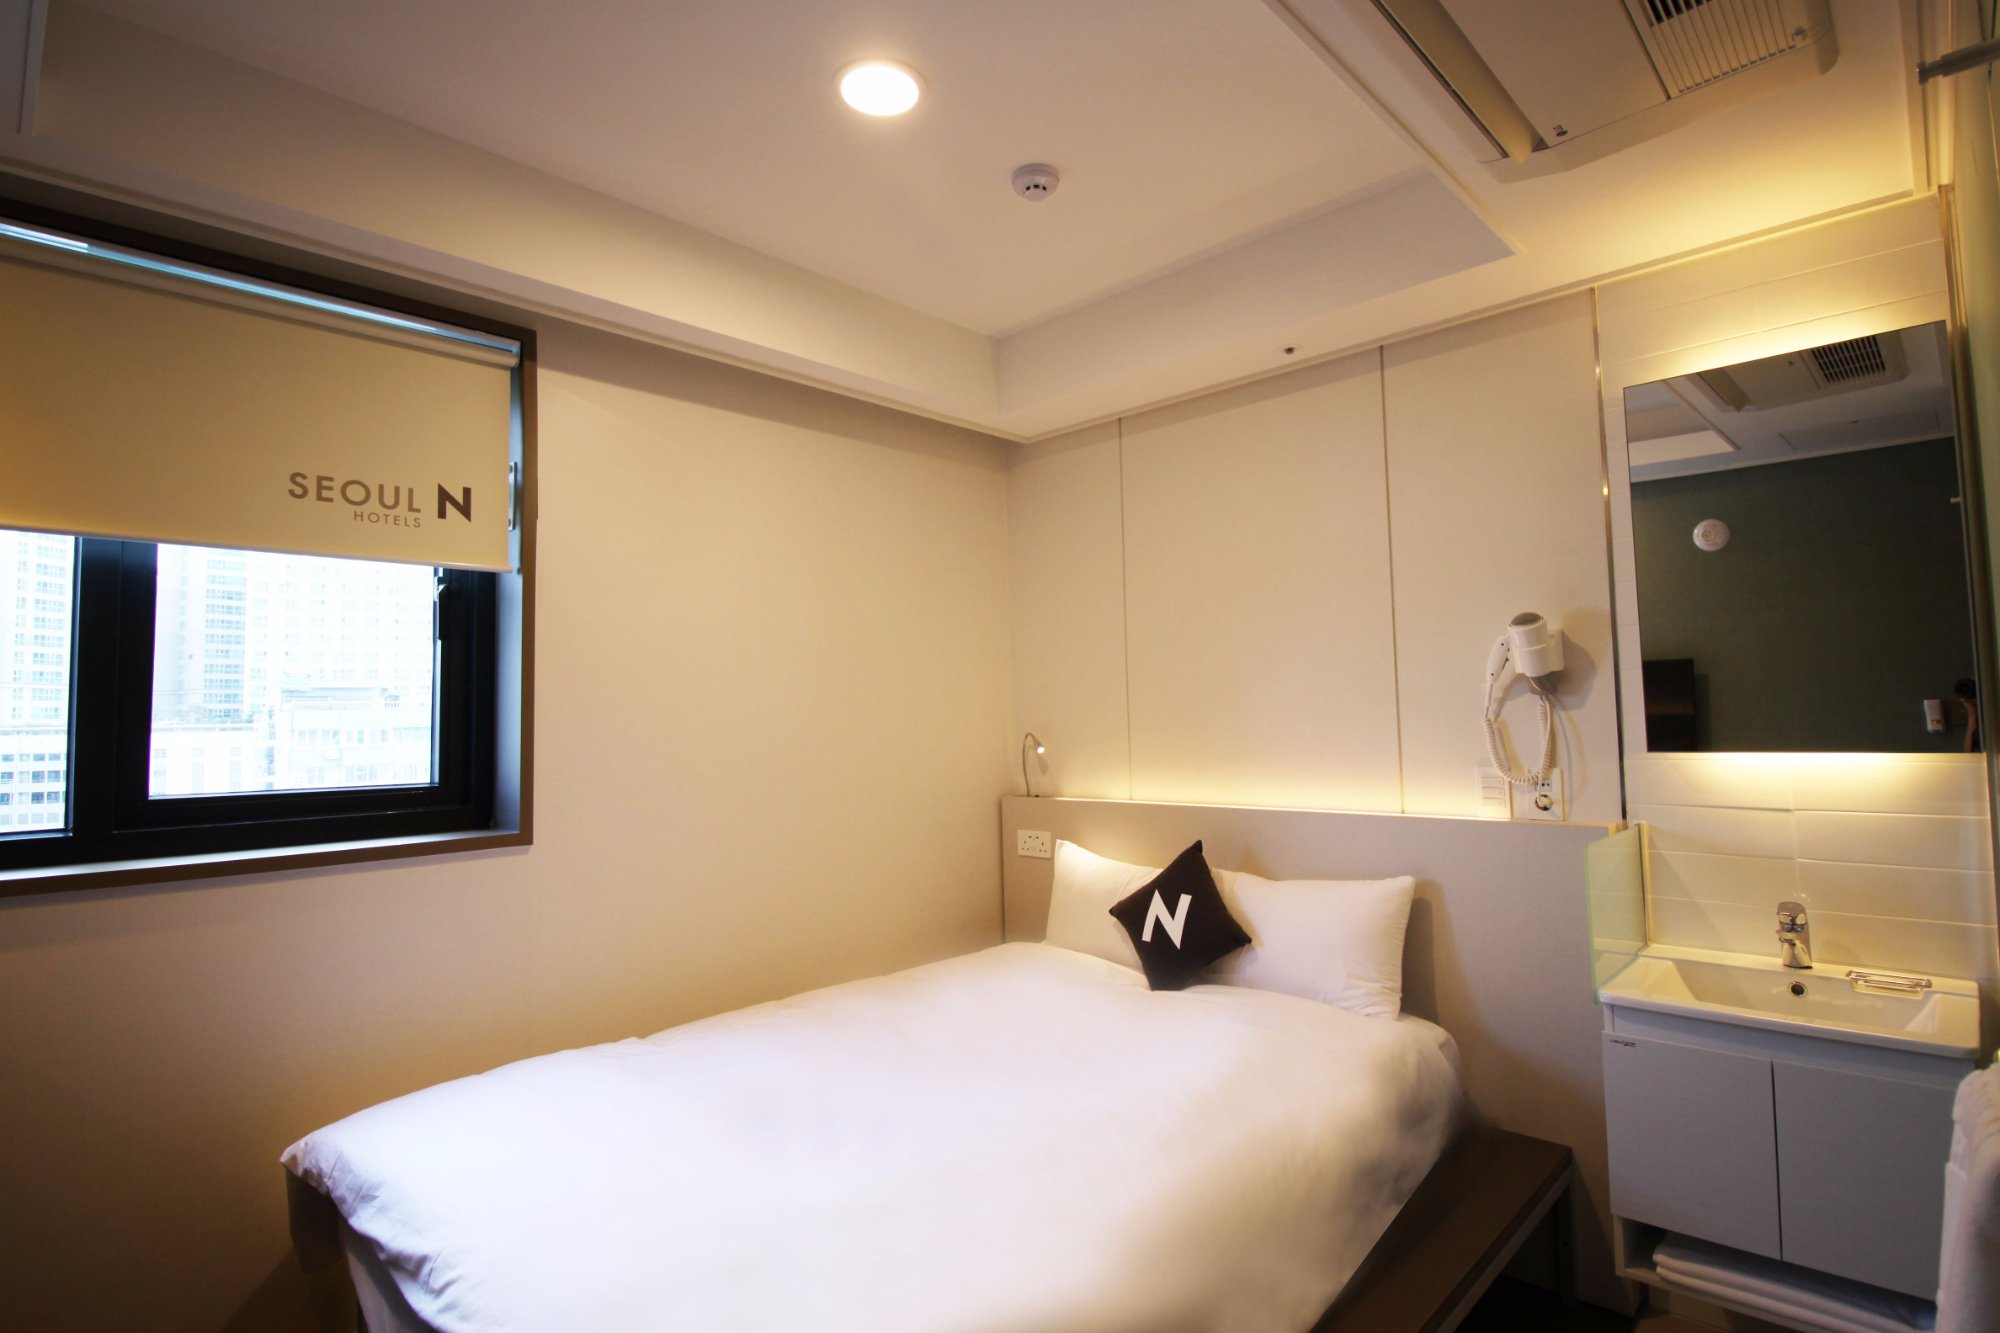 Accommodation details seoul luxury hotel accommodations rooms - All Photos 70